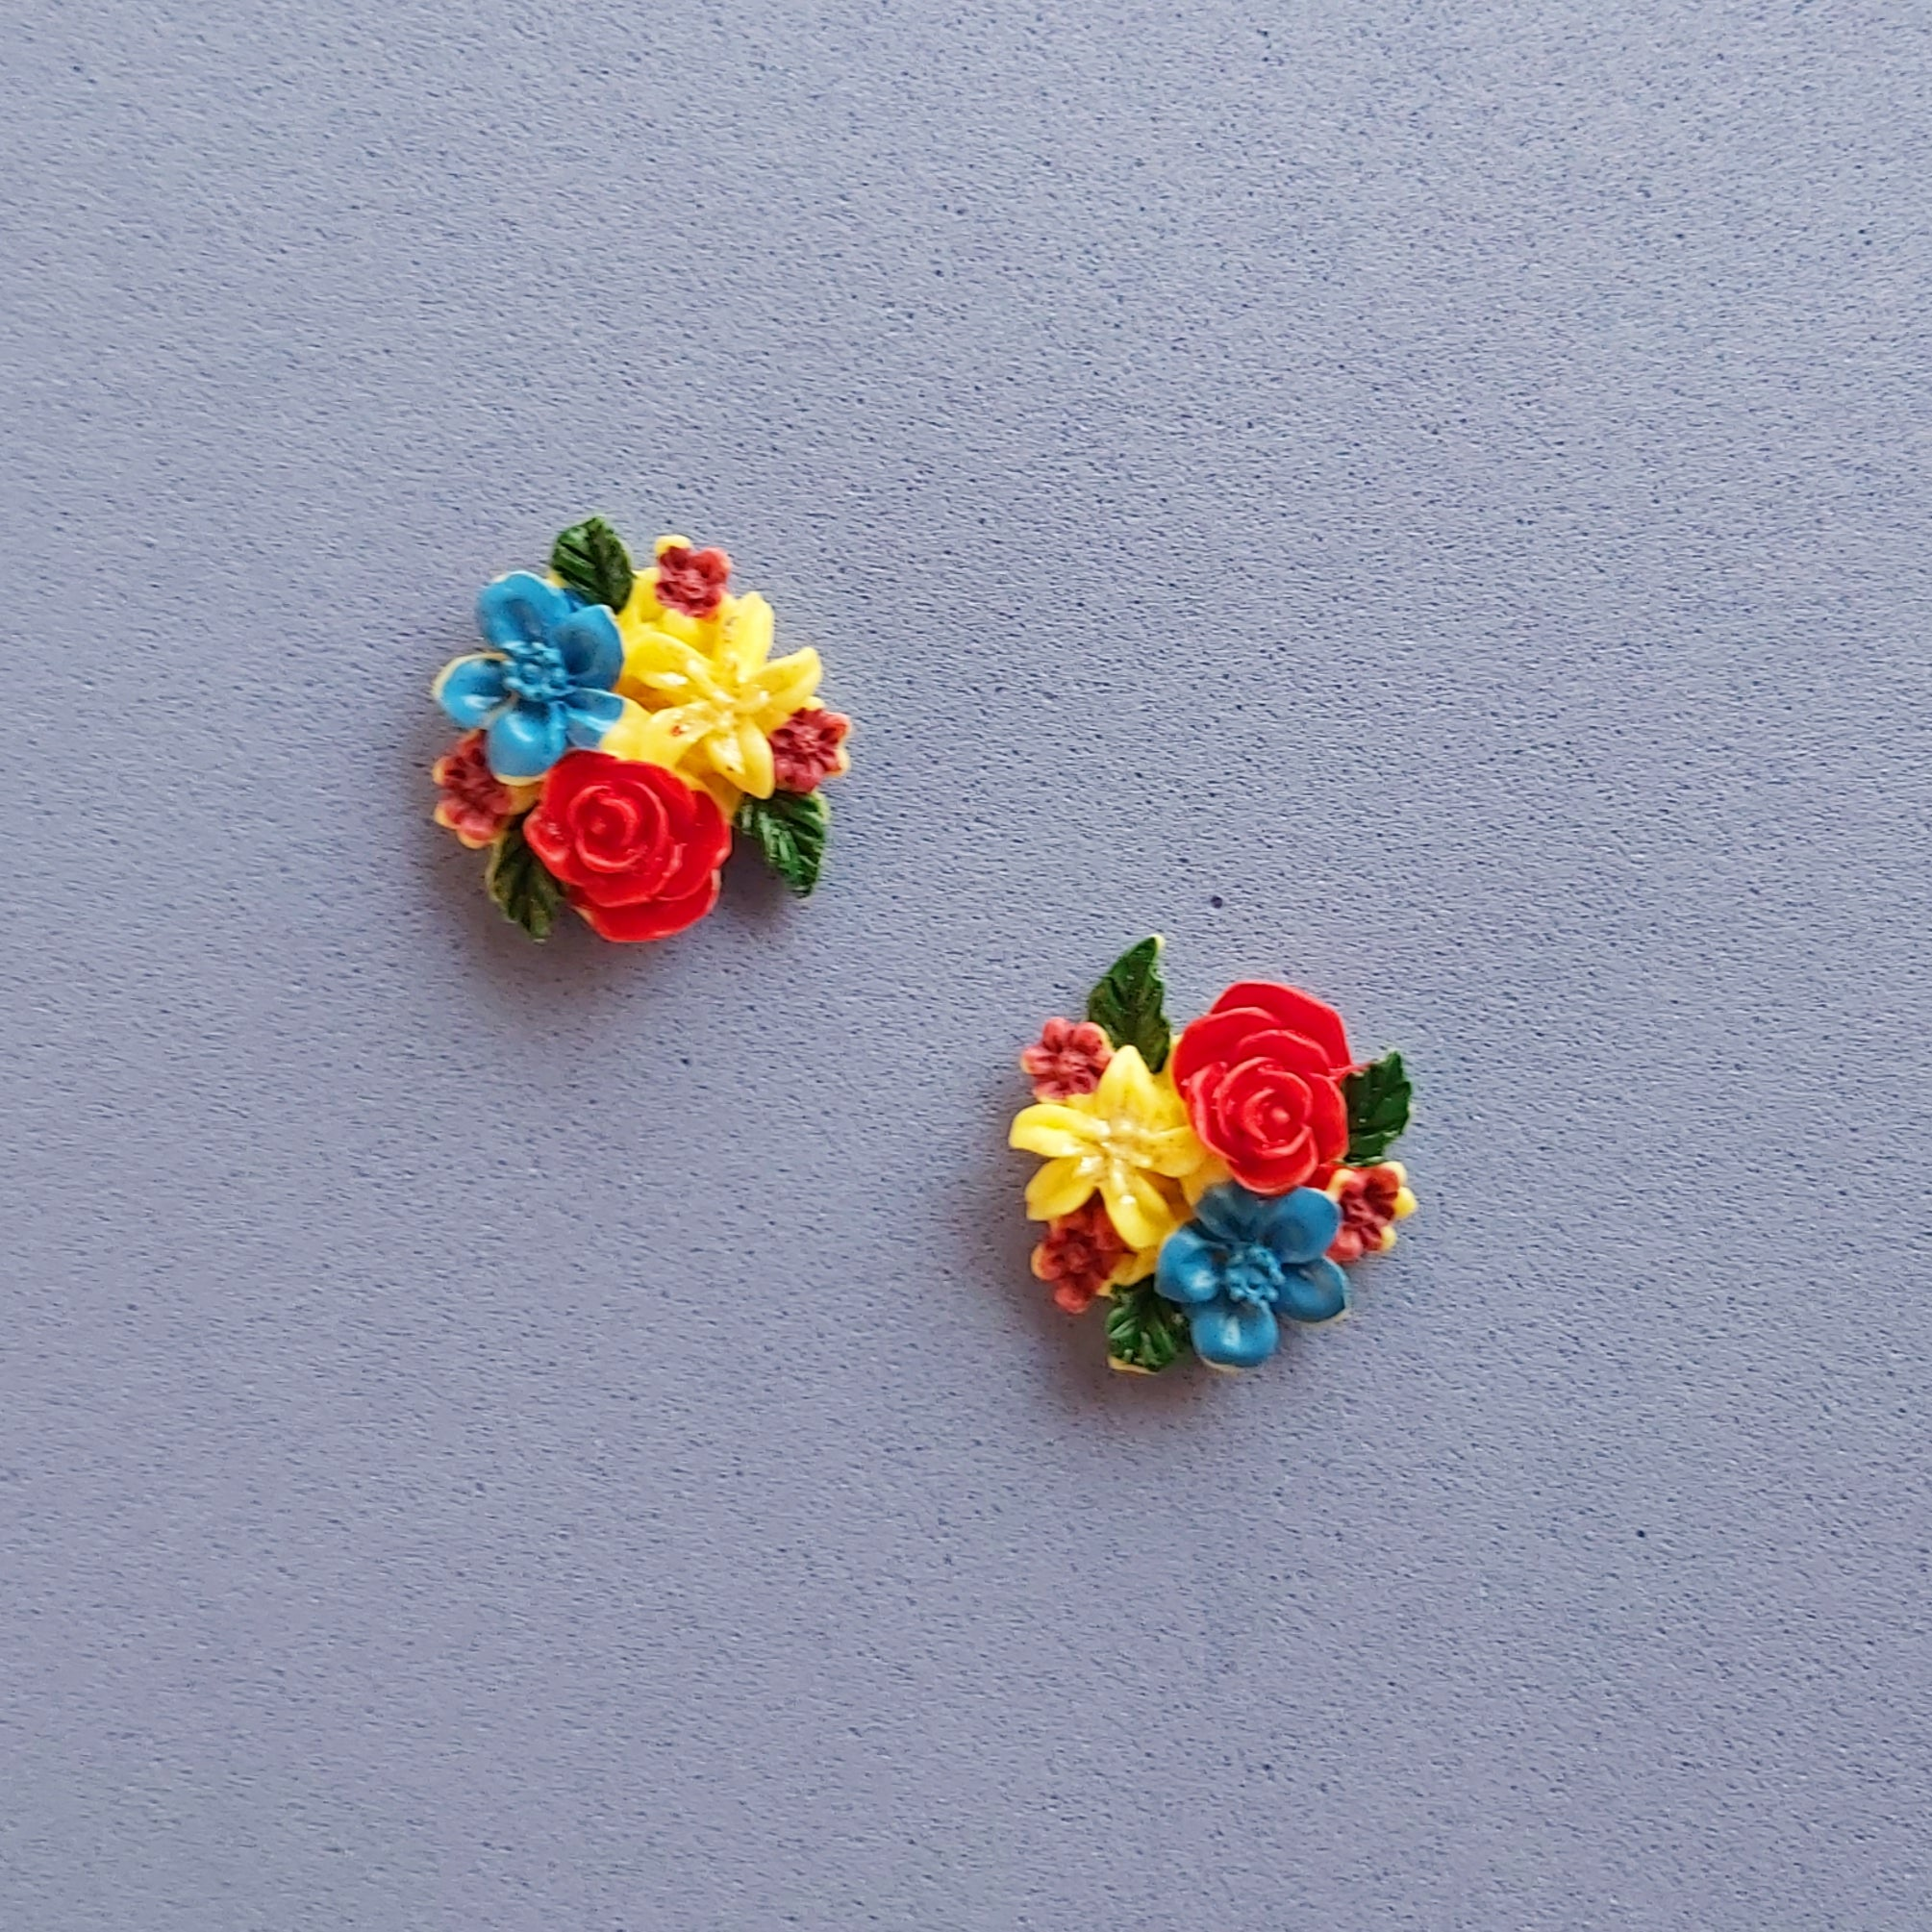 Vintage Floral Bouquet Earrings